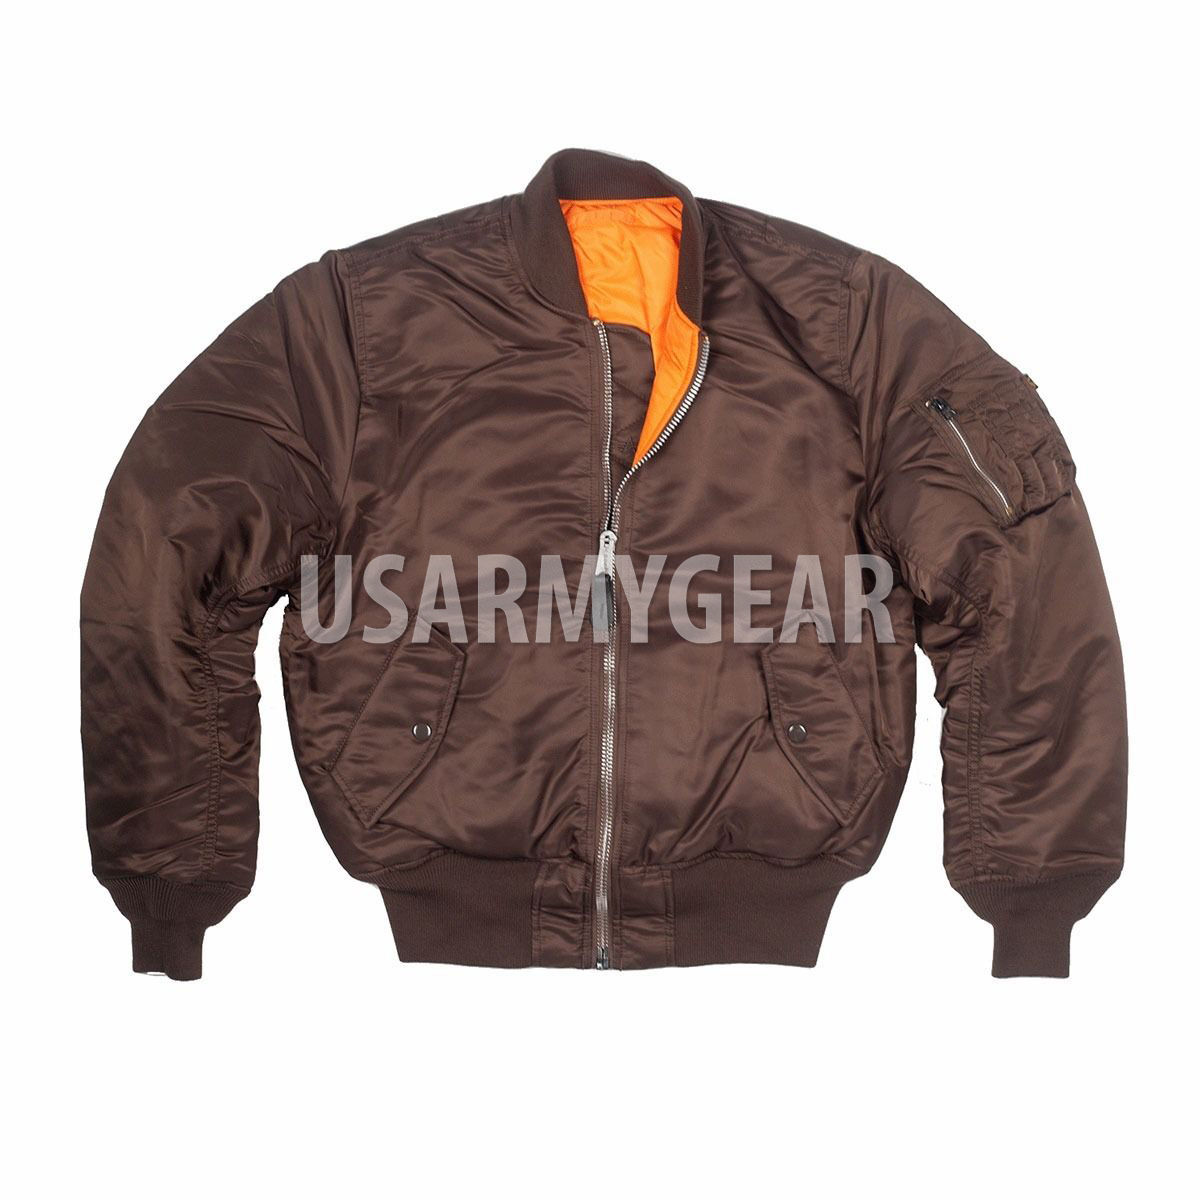 feaaf6efa82 Made in USA MA-1 Alpha Industries US Army Pilot Flight Military ...